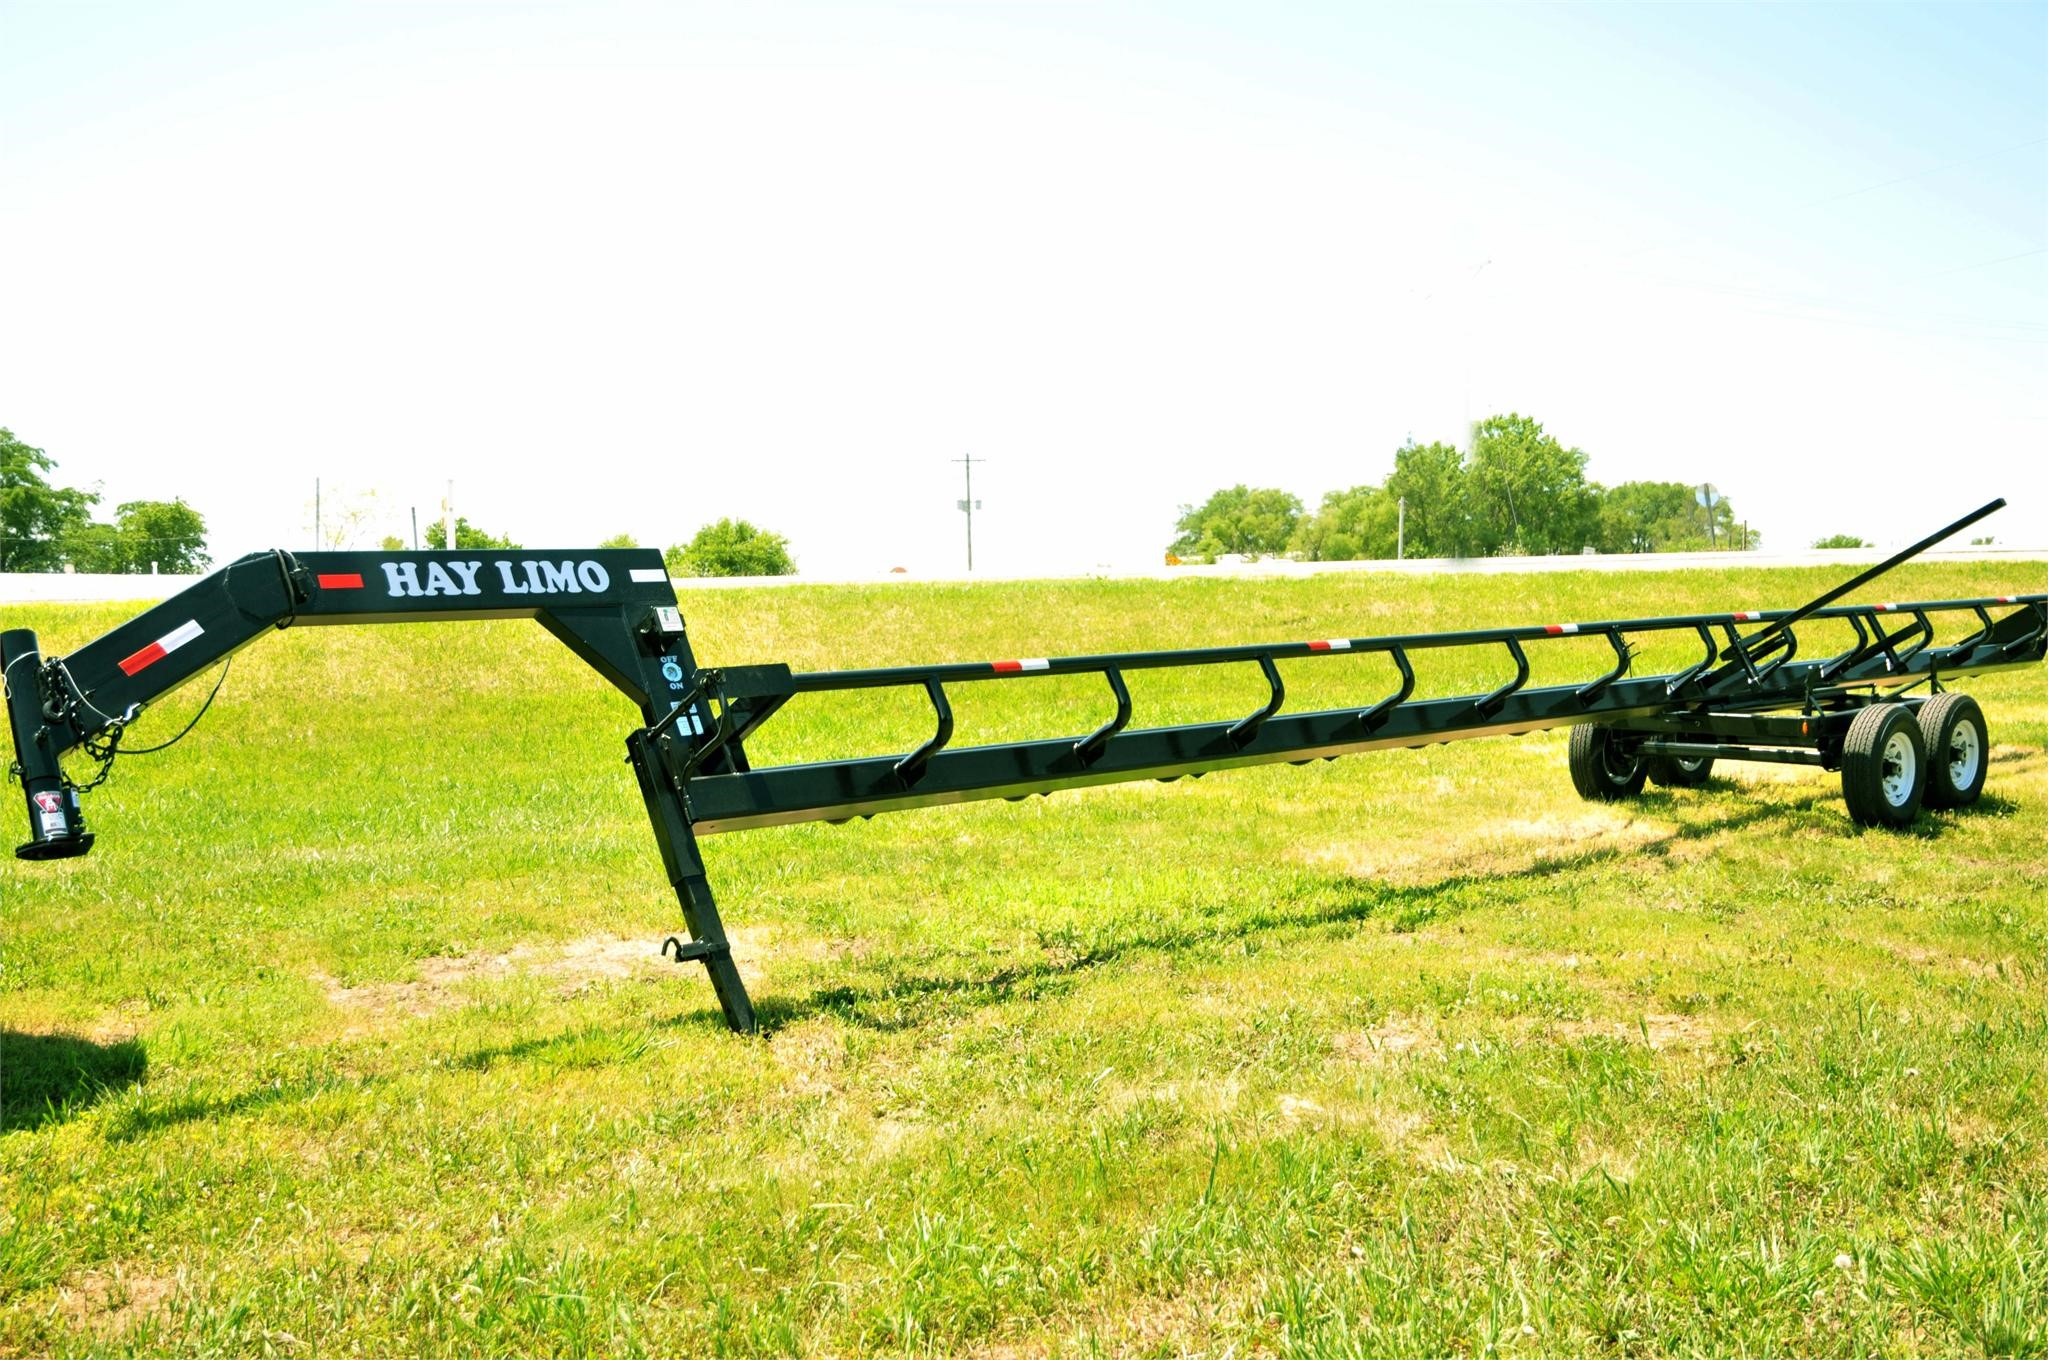 2020 WELDING INNOVATIONS 5BM Bale Wagons and Trailer